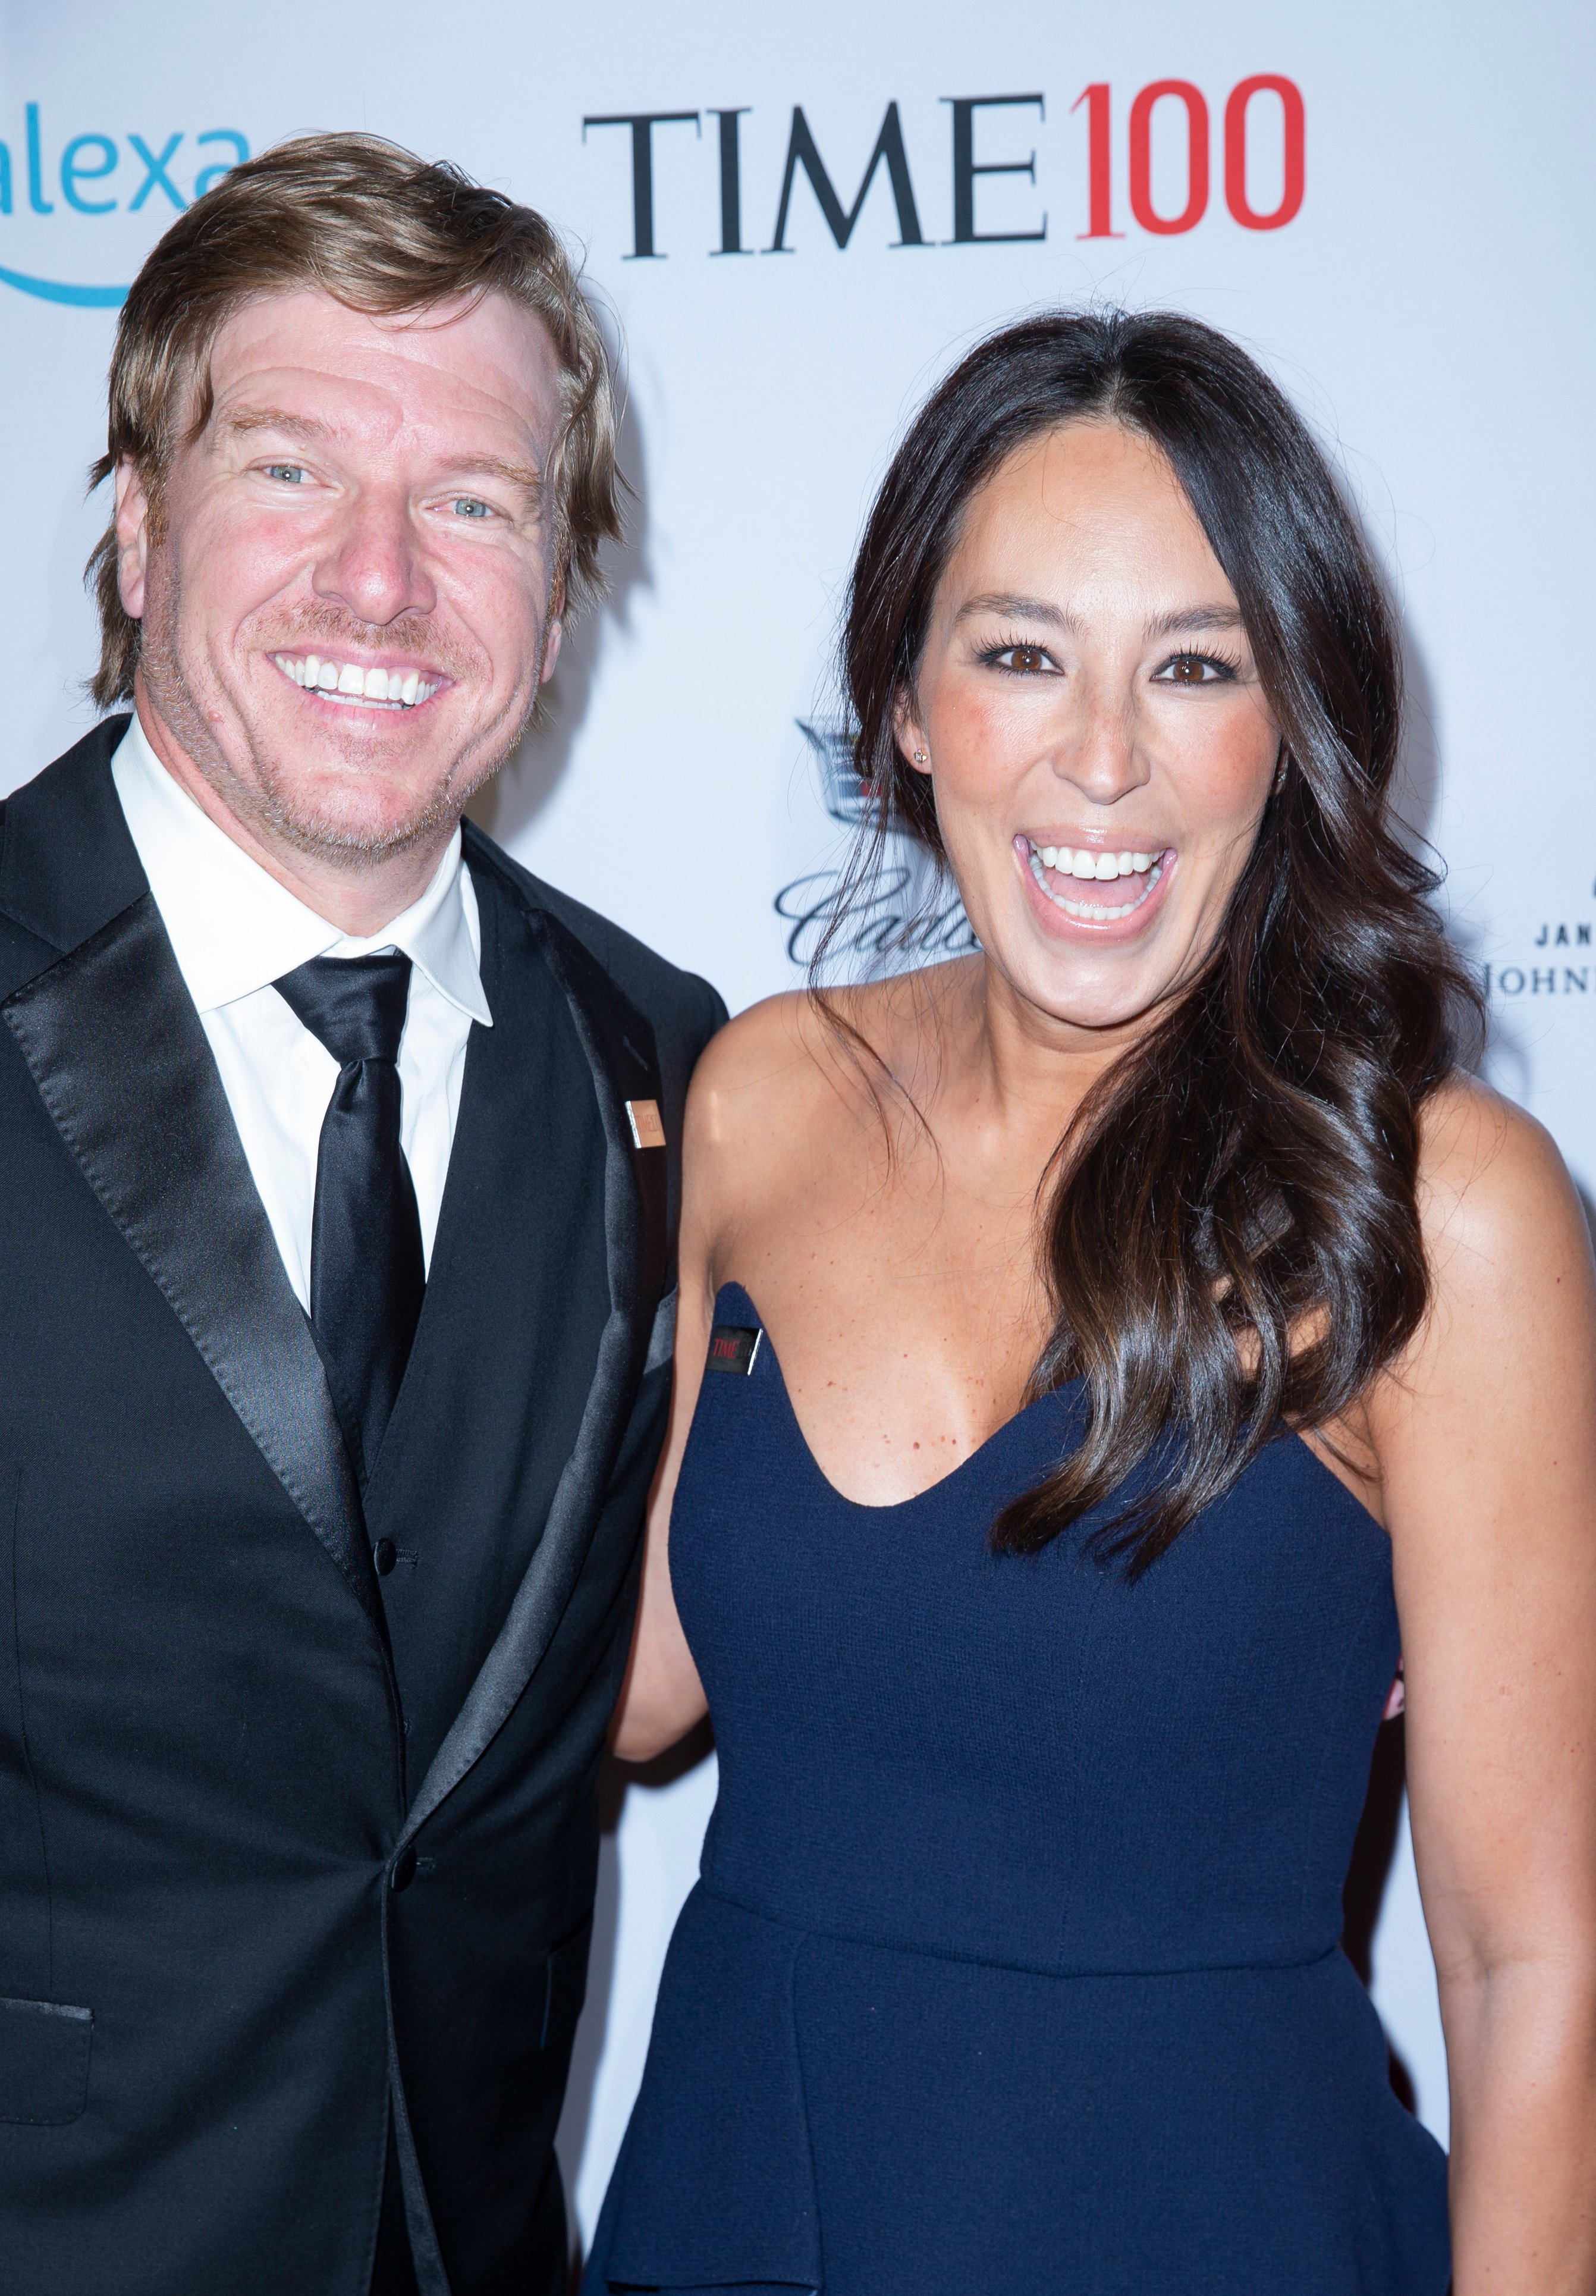 Chip Gaines and Joanna Gaines attend the TIME 100 Gala 2019 at Jazz at Lincoln Center | Photo: Shutterstock